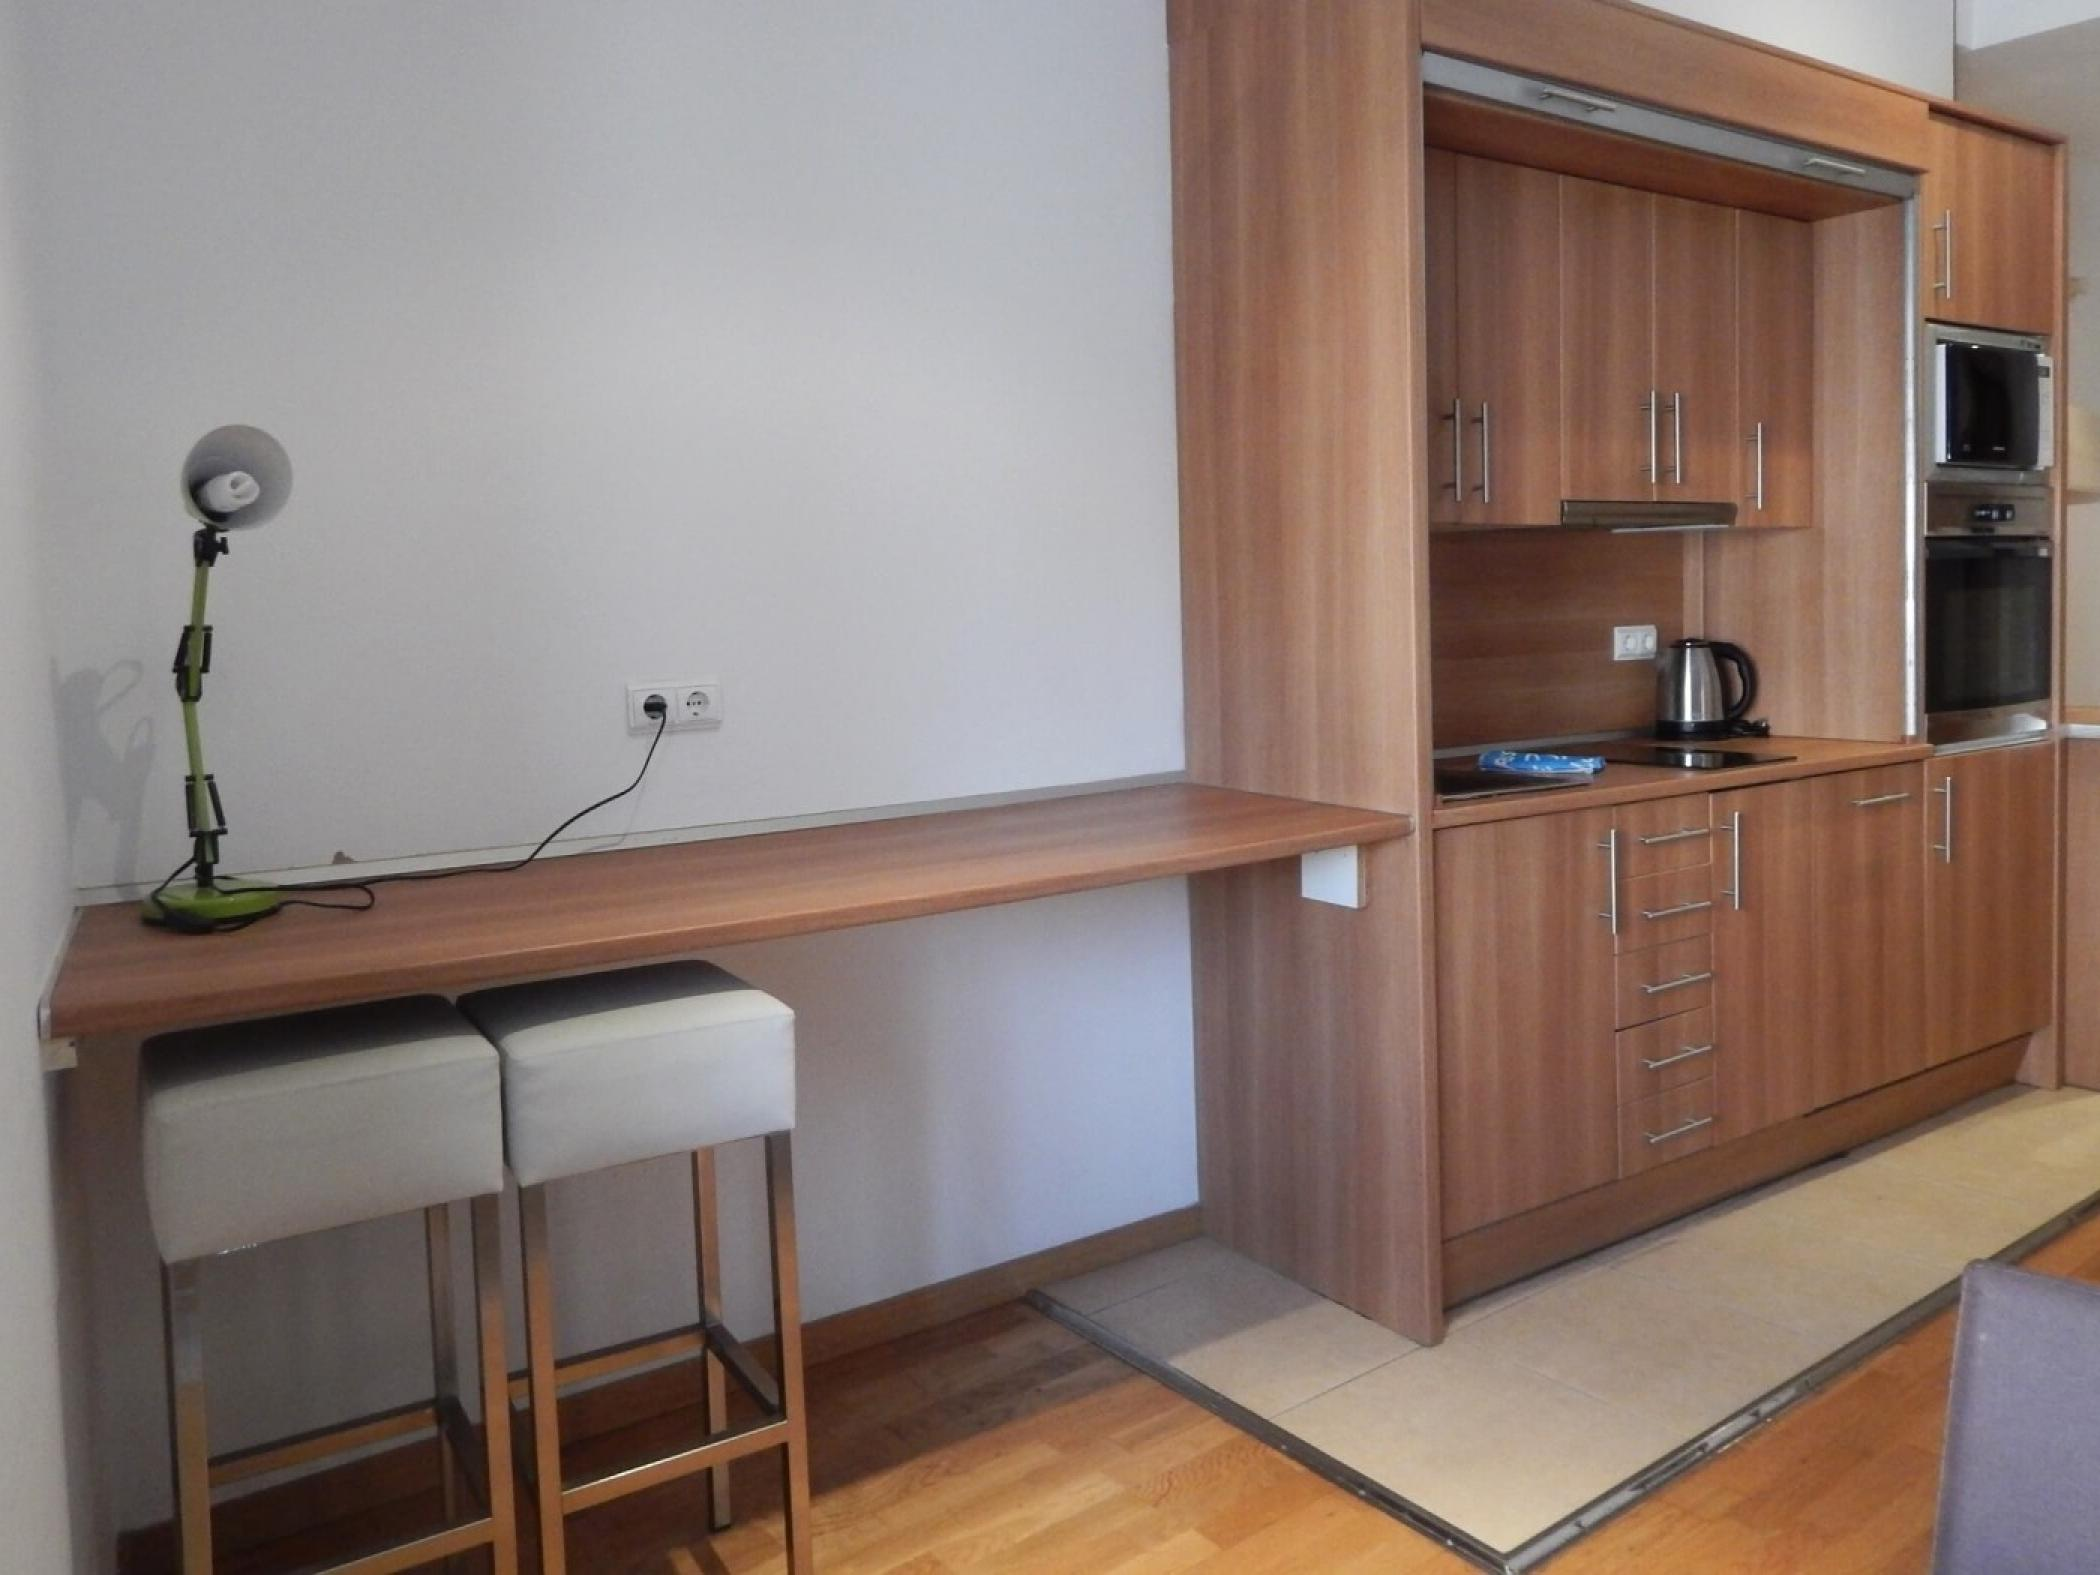 Rent Apartment in Girona - Girona Pou Rodó 22 - 2